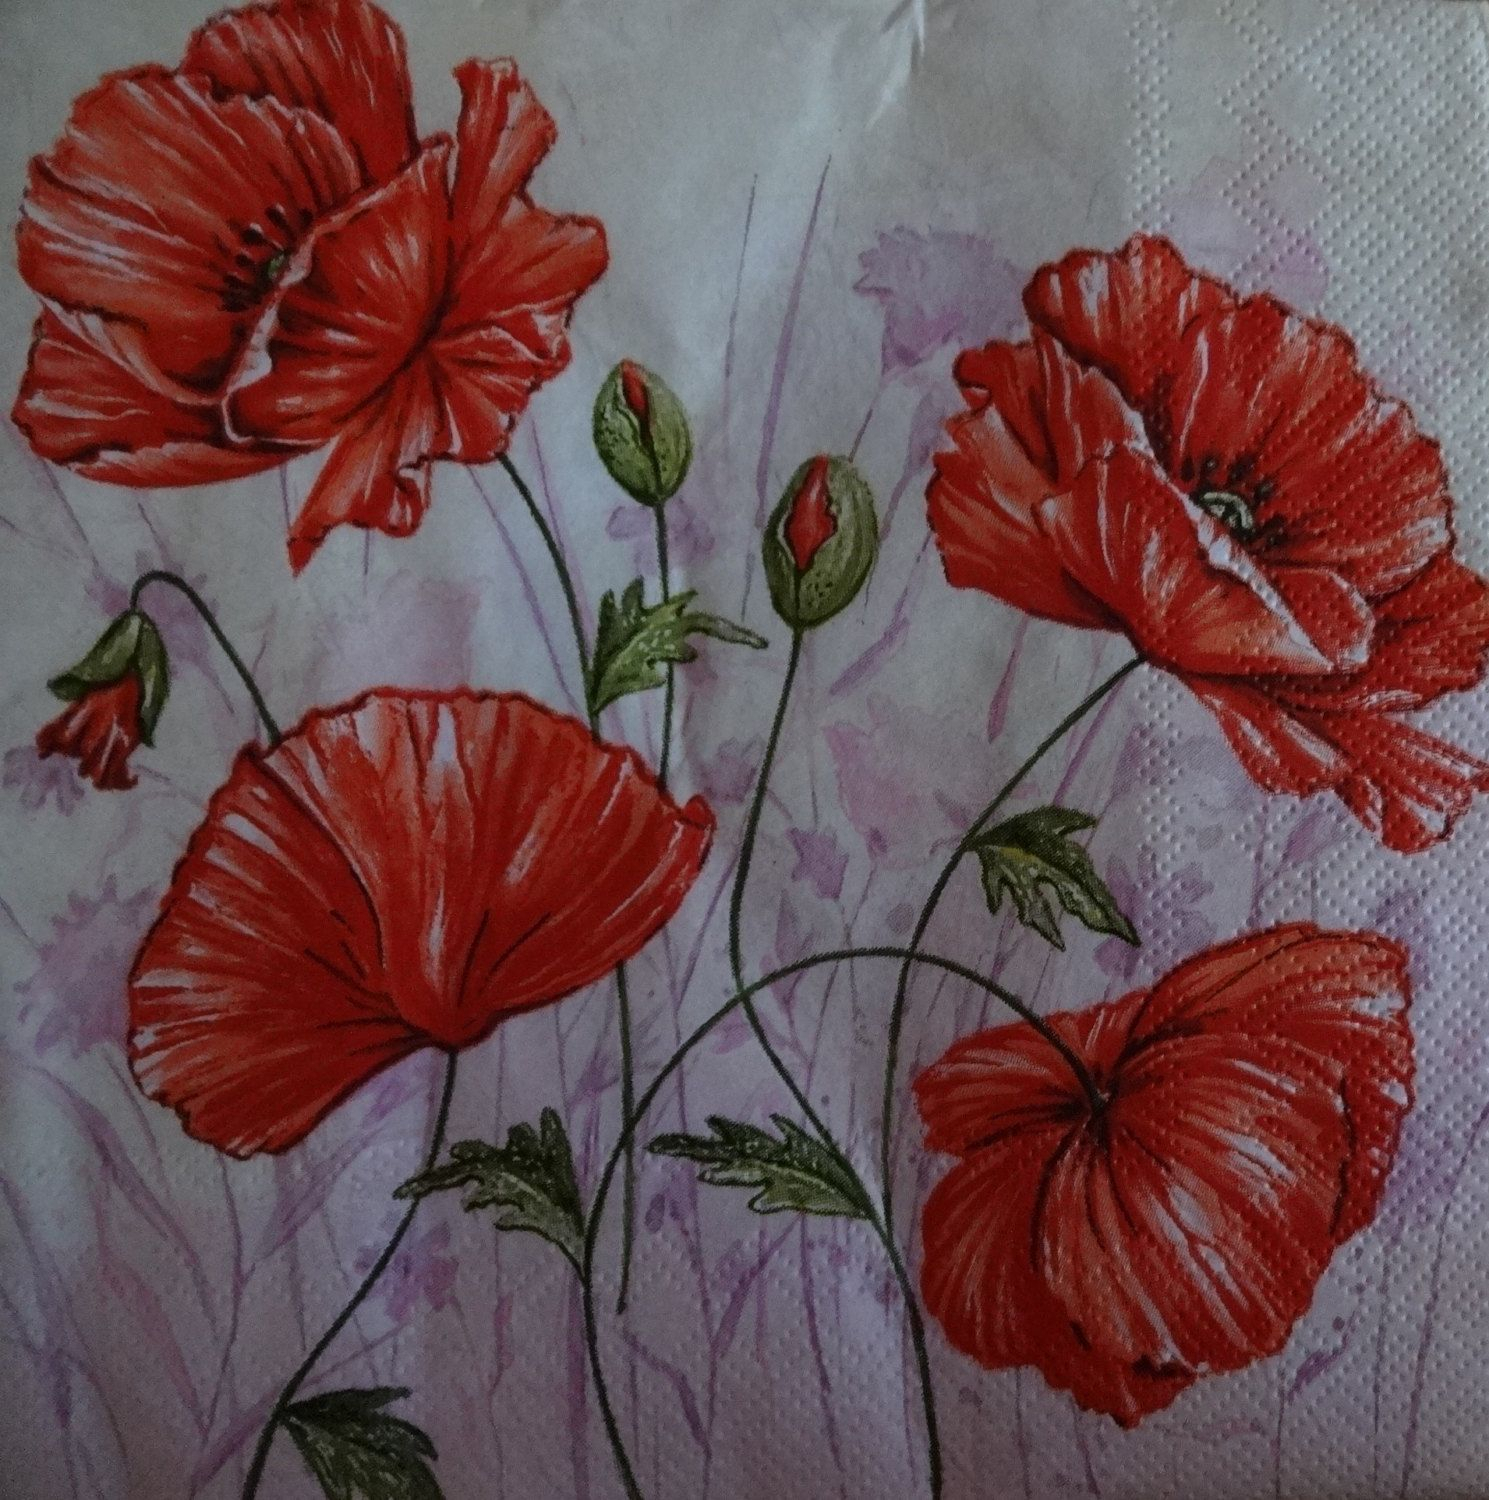 4 Poppy Decoupage Napkins Printed Paper Napkins Mixed Media Intended For Newest Blended Fabric Poppy Red Wall Hangings (View 11 of 20)